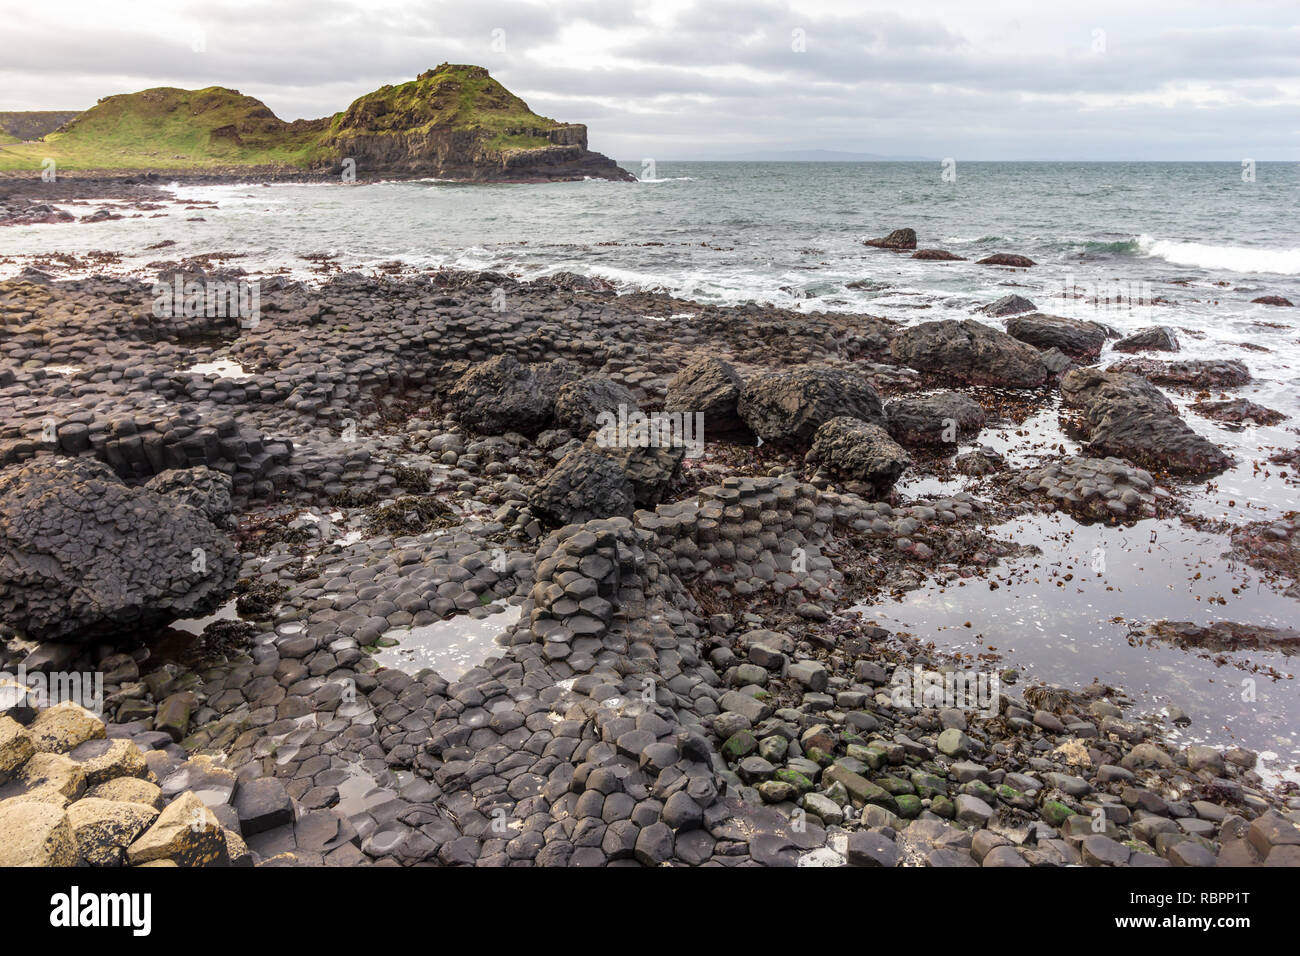 The Giants Causeway in Northern Ireland is known for its hexagonal basalt columns - Stock Image